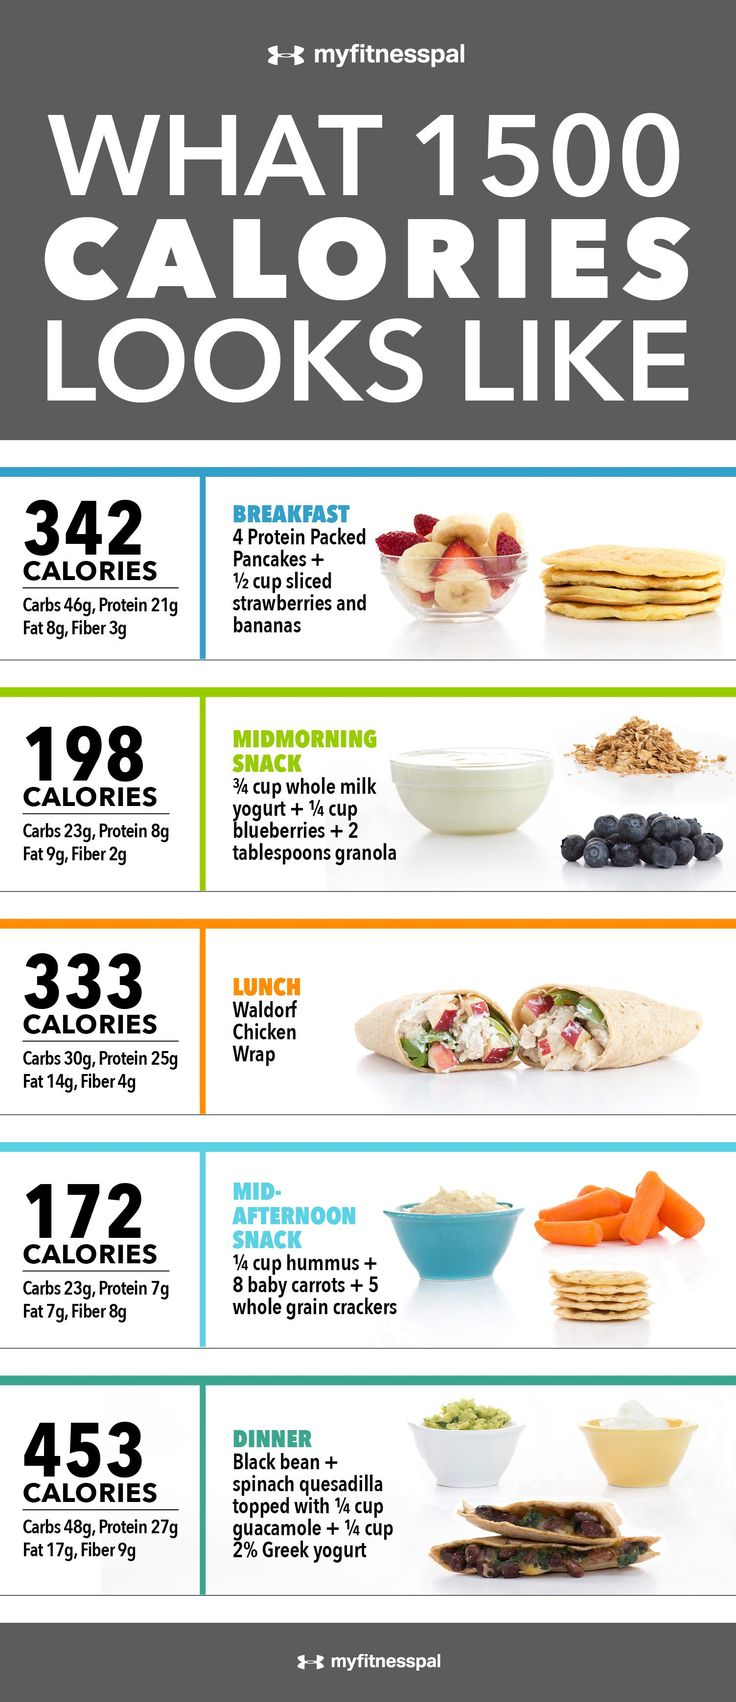 Sticking to a 1500 calorie diet? Take a look at some of the tasty foods you could be eating.